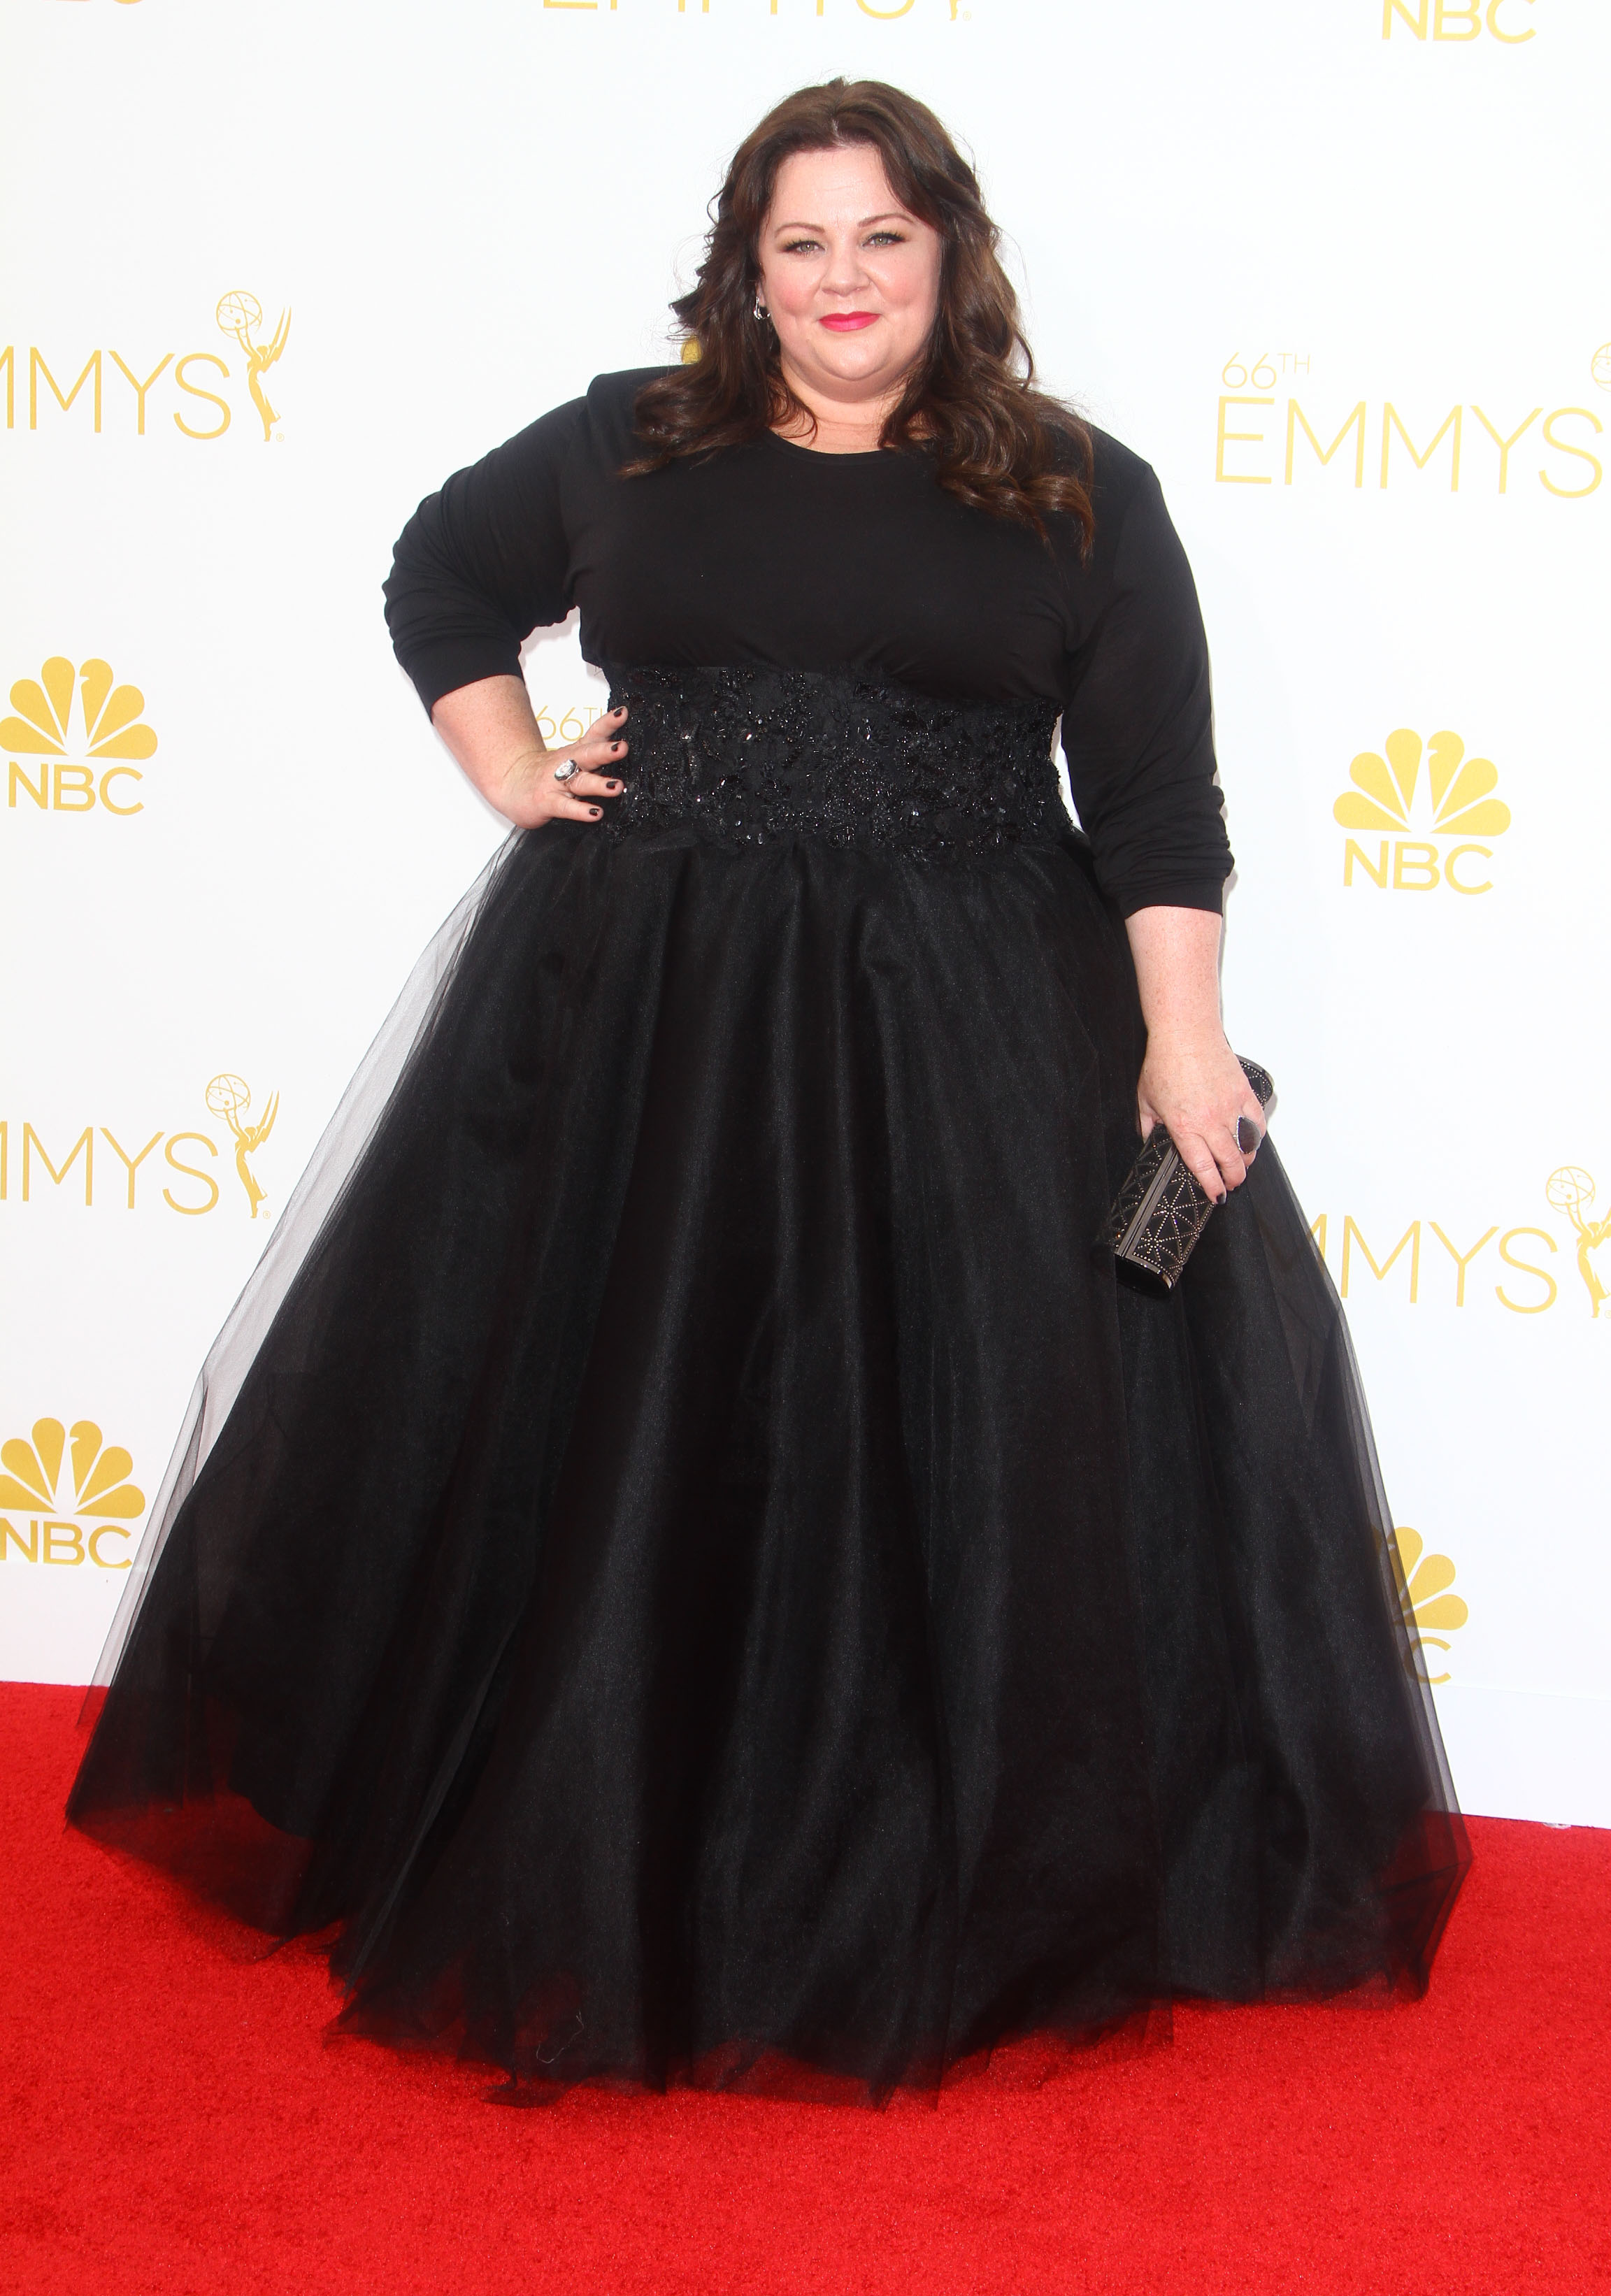 Melissa McCarthy at the Emmys